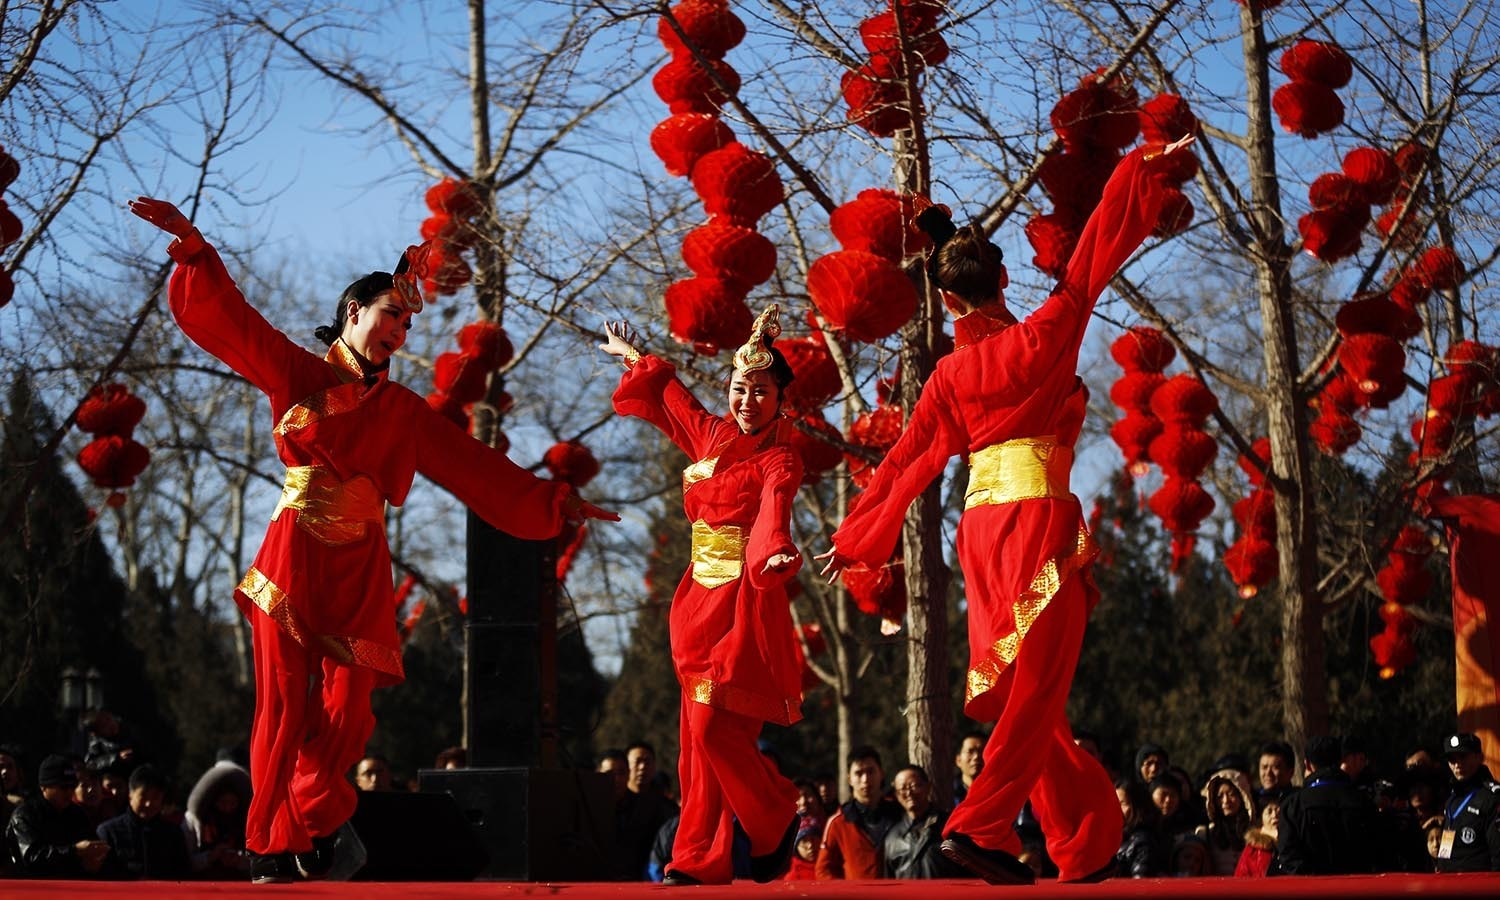 Chinese dancers dressed in traditional costumes perform a cultural dance on stage during a temple fair. ─ AP